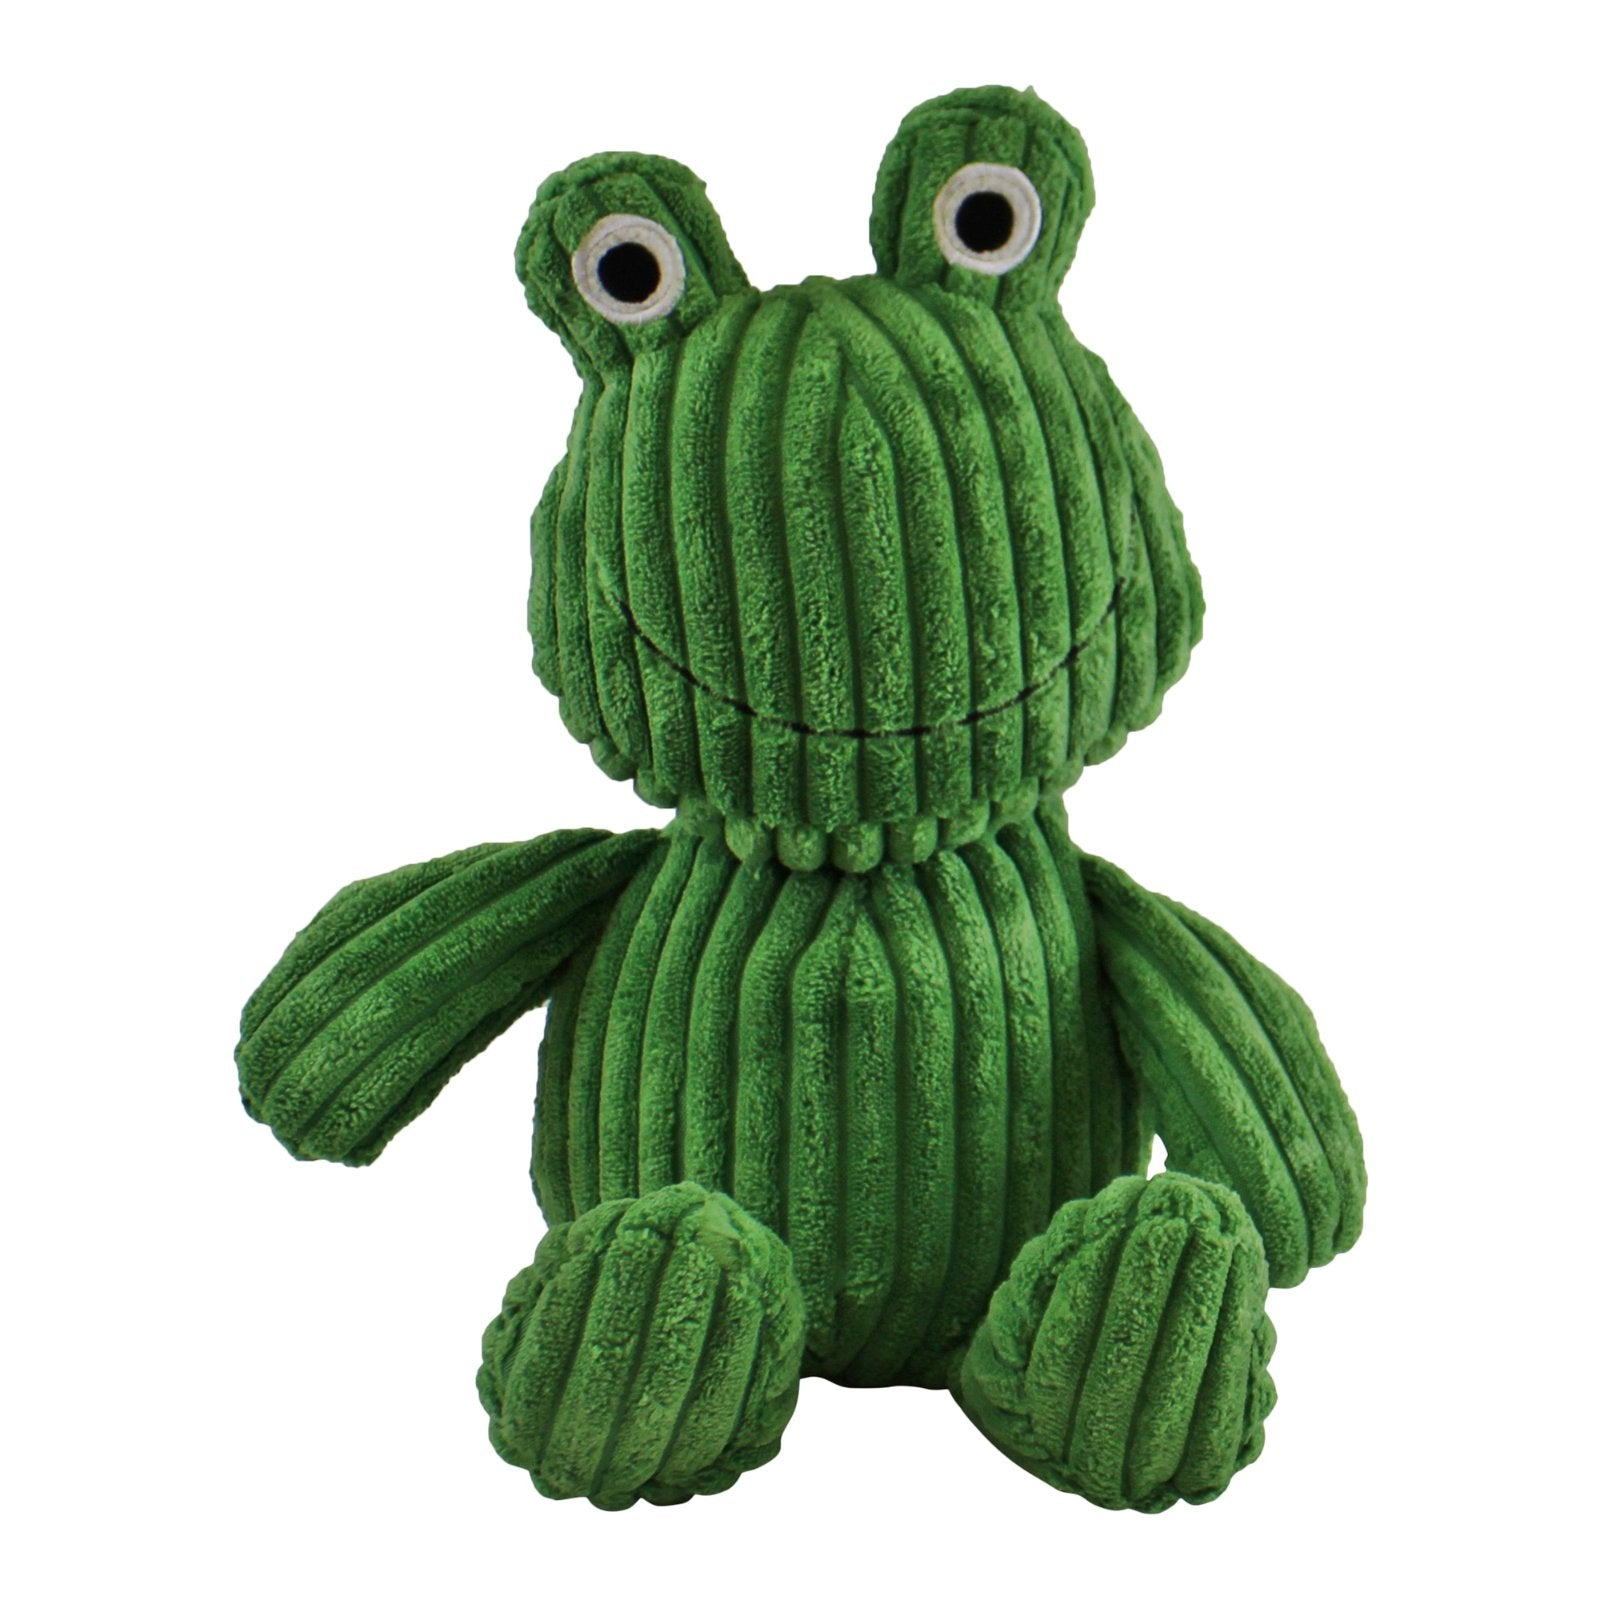 Ribbed Fabric Frog Doorstop, 27cm, Building Materials by Gifts24-7